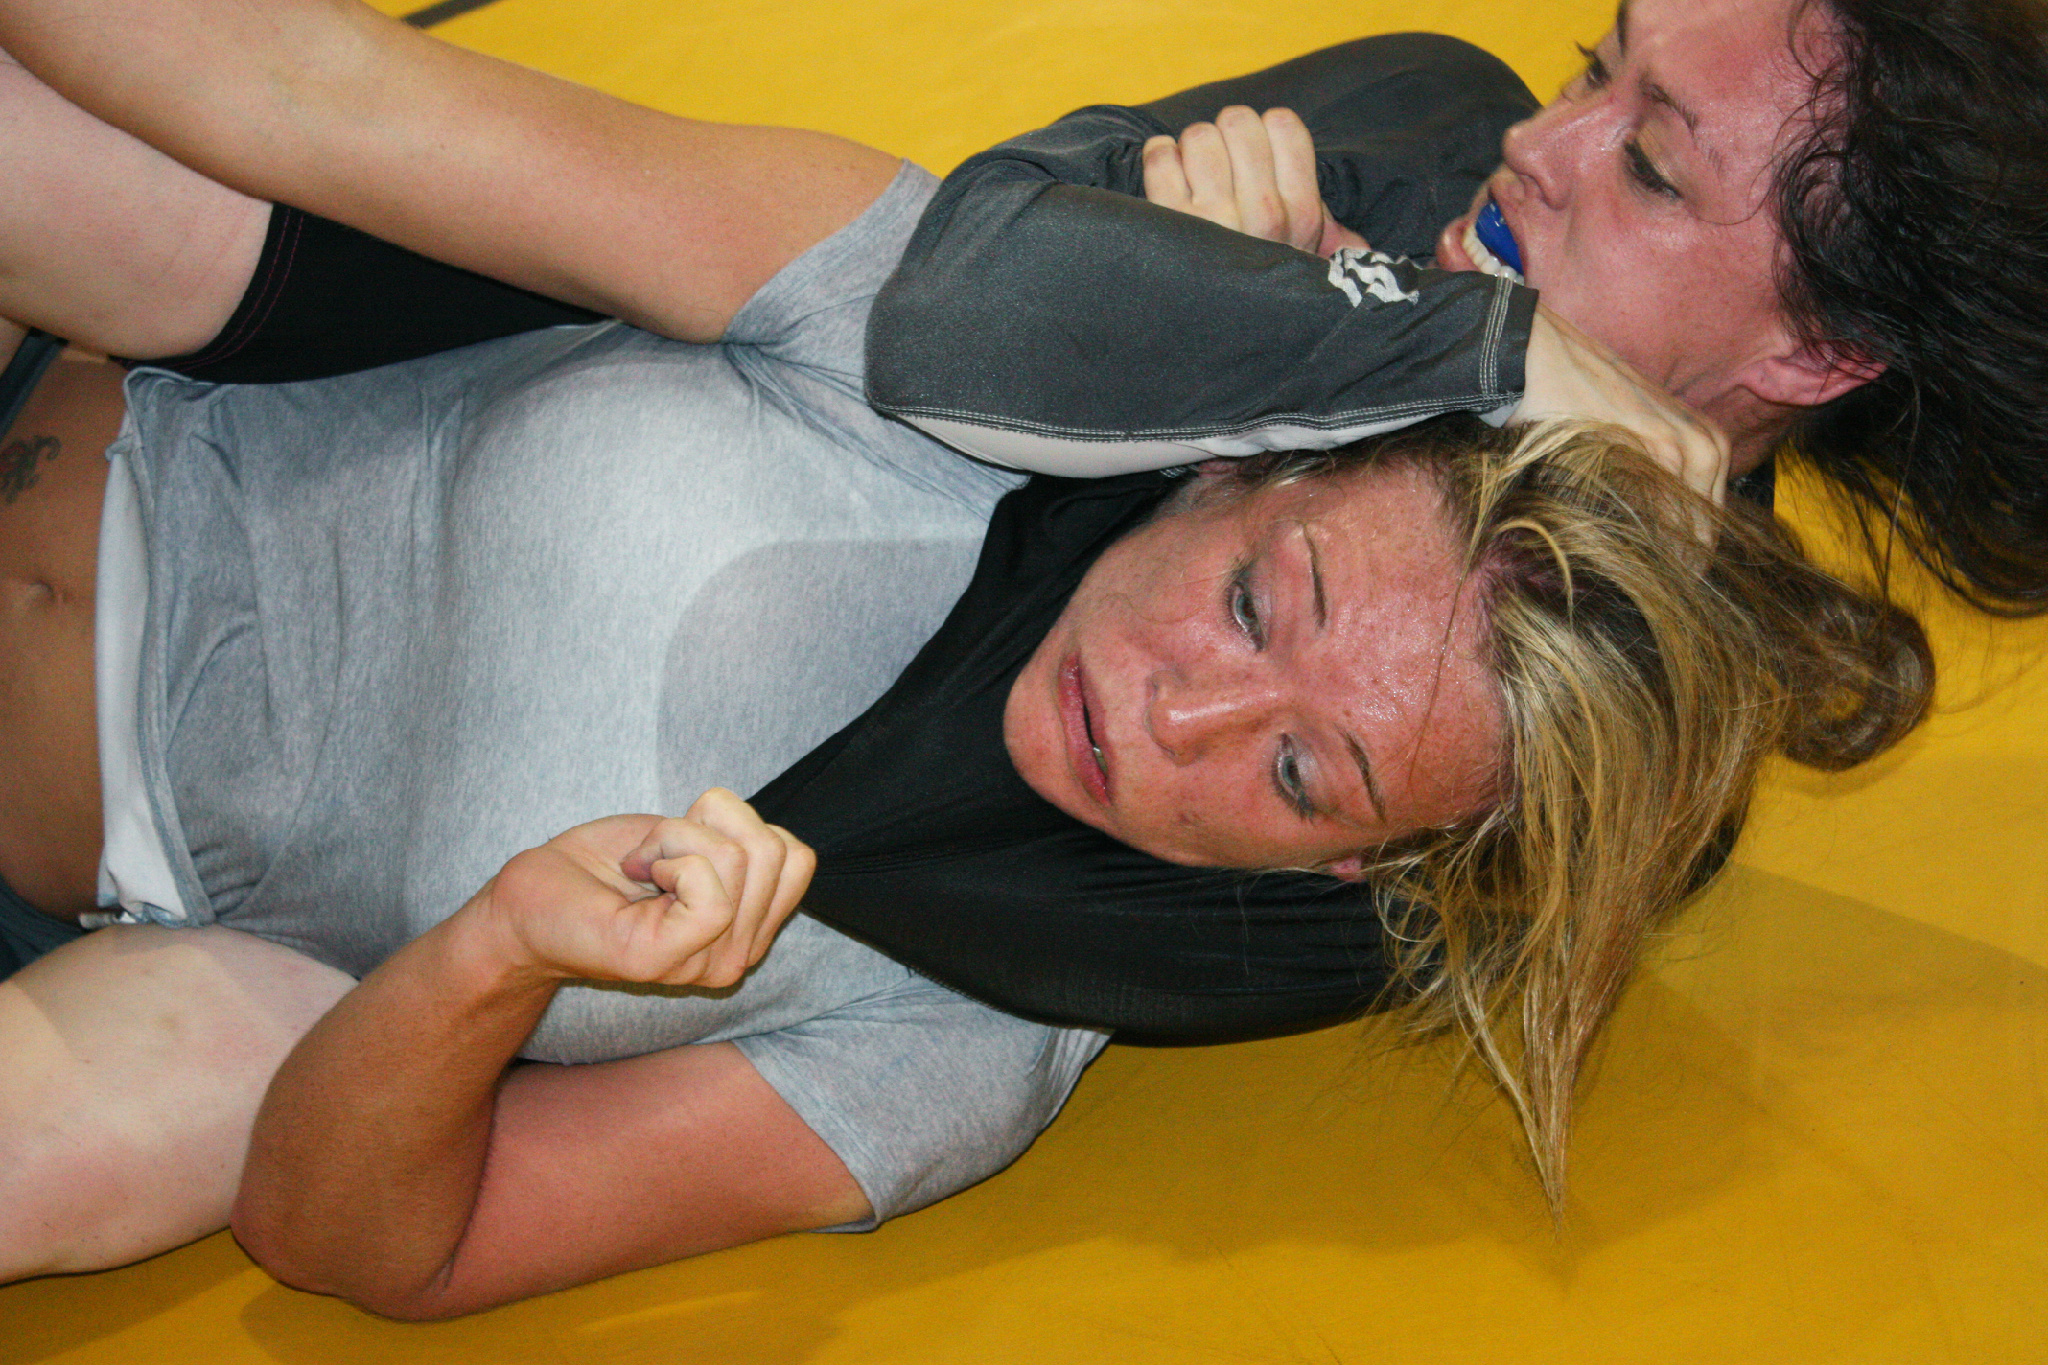 Pictures of women doing rear naked chokes